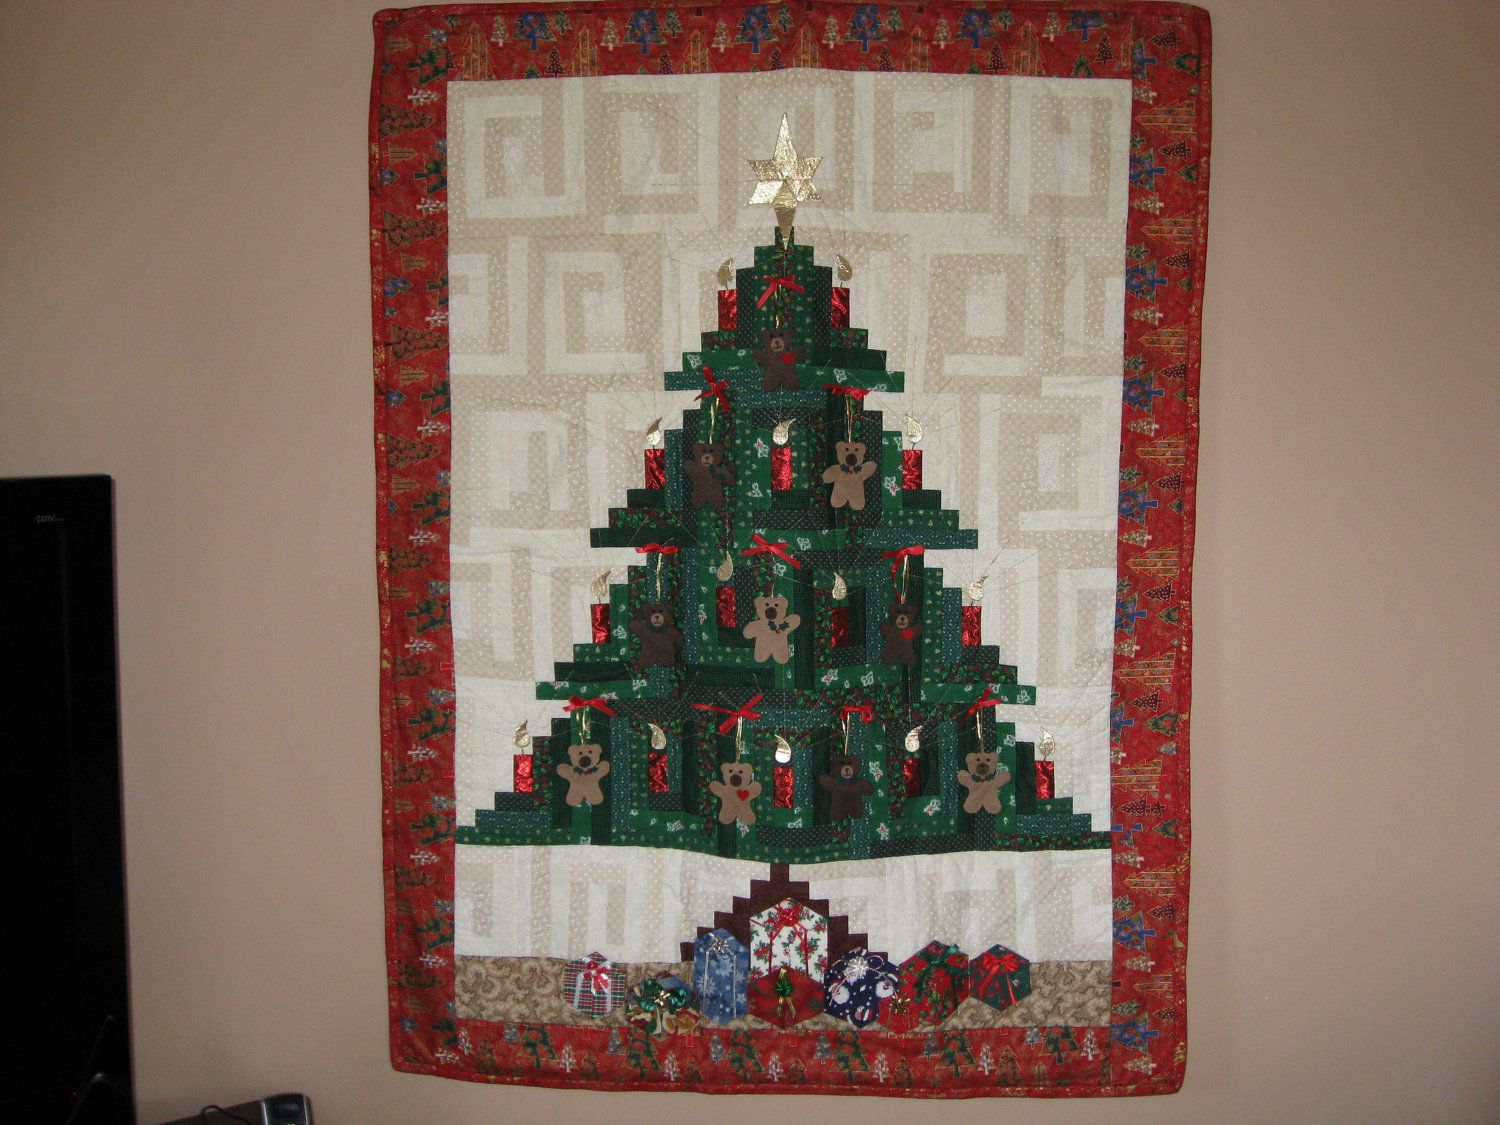 Log Cabin Christmas Tree Quilt.Christmas Tree Quilt With Teddy Bears Log Cabin Pattern